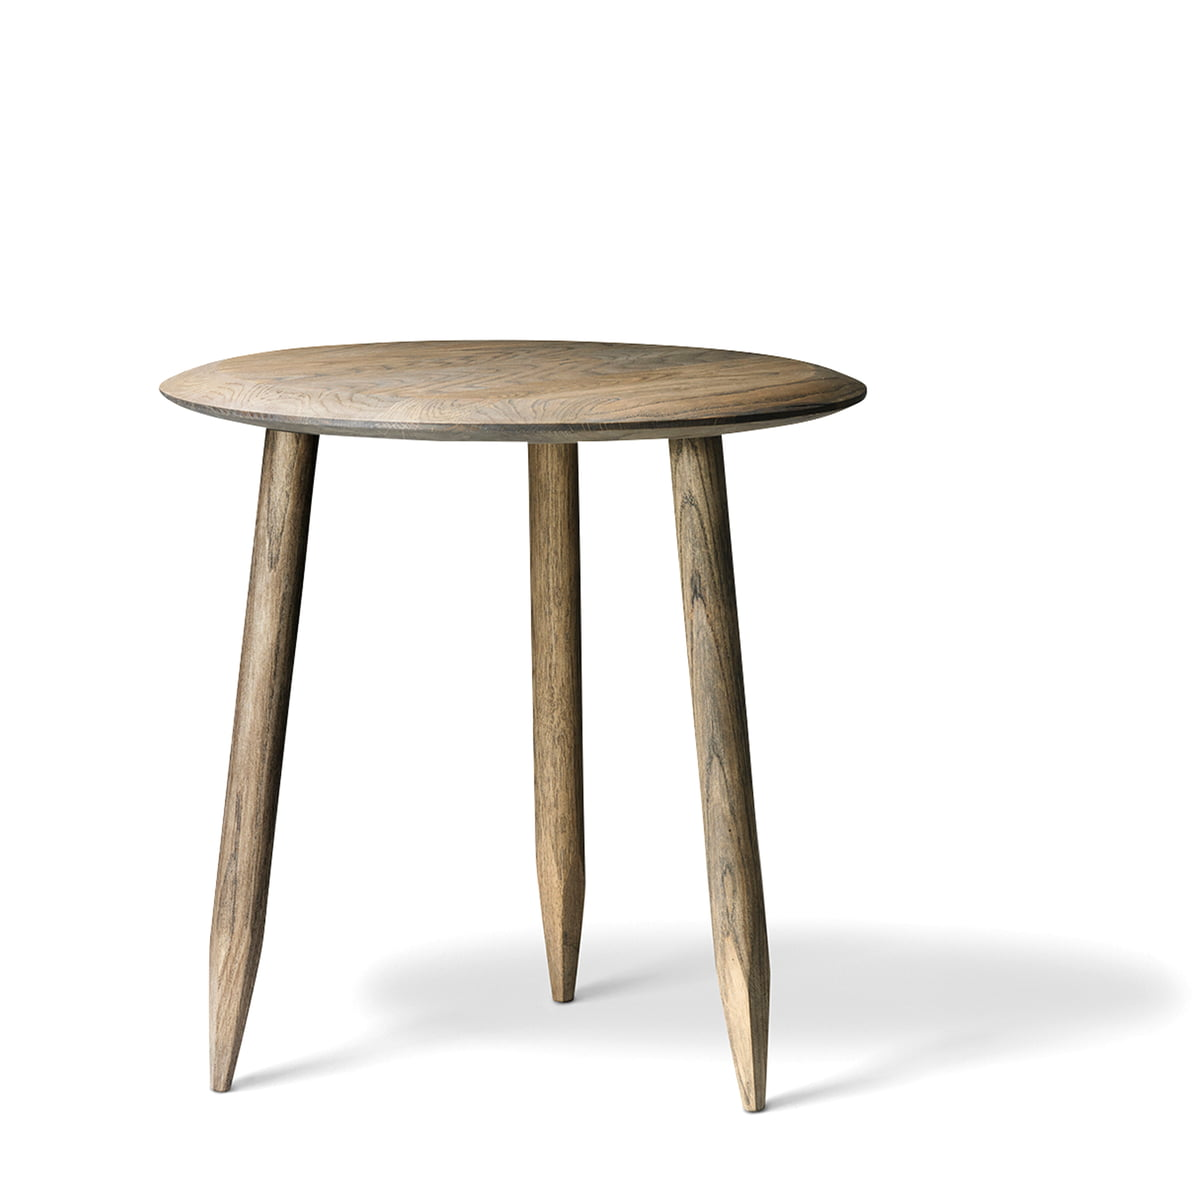 Side Table Klein.Tradition Hoof Side Table Sw1 O 50 Cm Smoked And Oiled Oak Wood